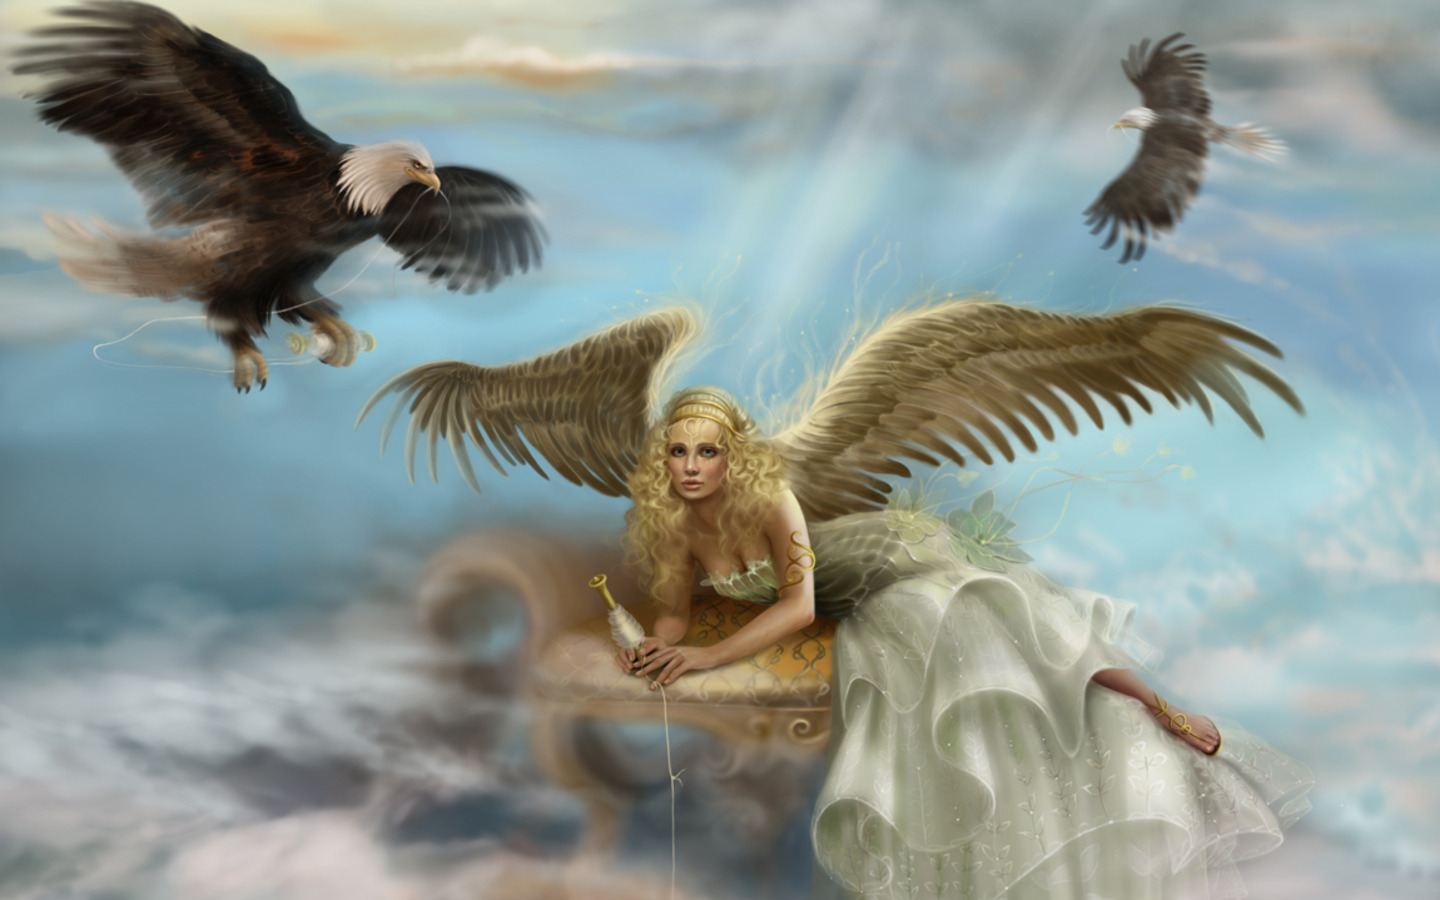 Are mistaken. Beautiful fantasy angels will